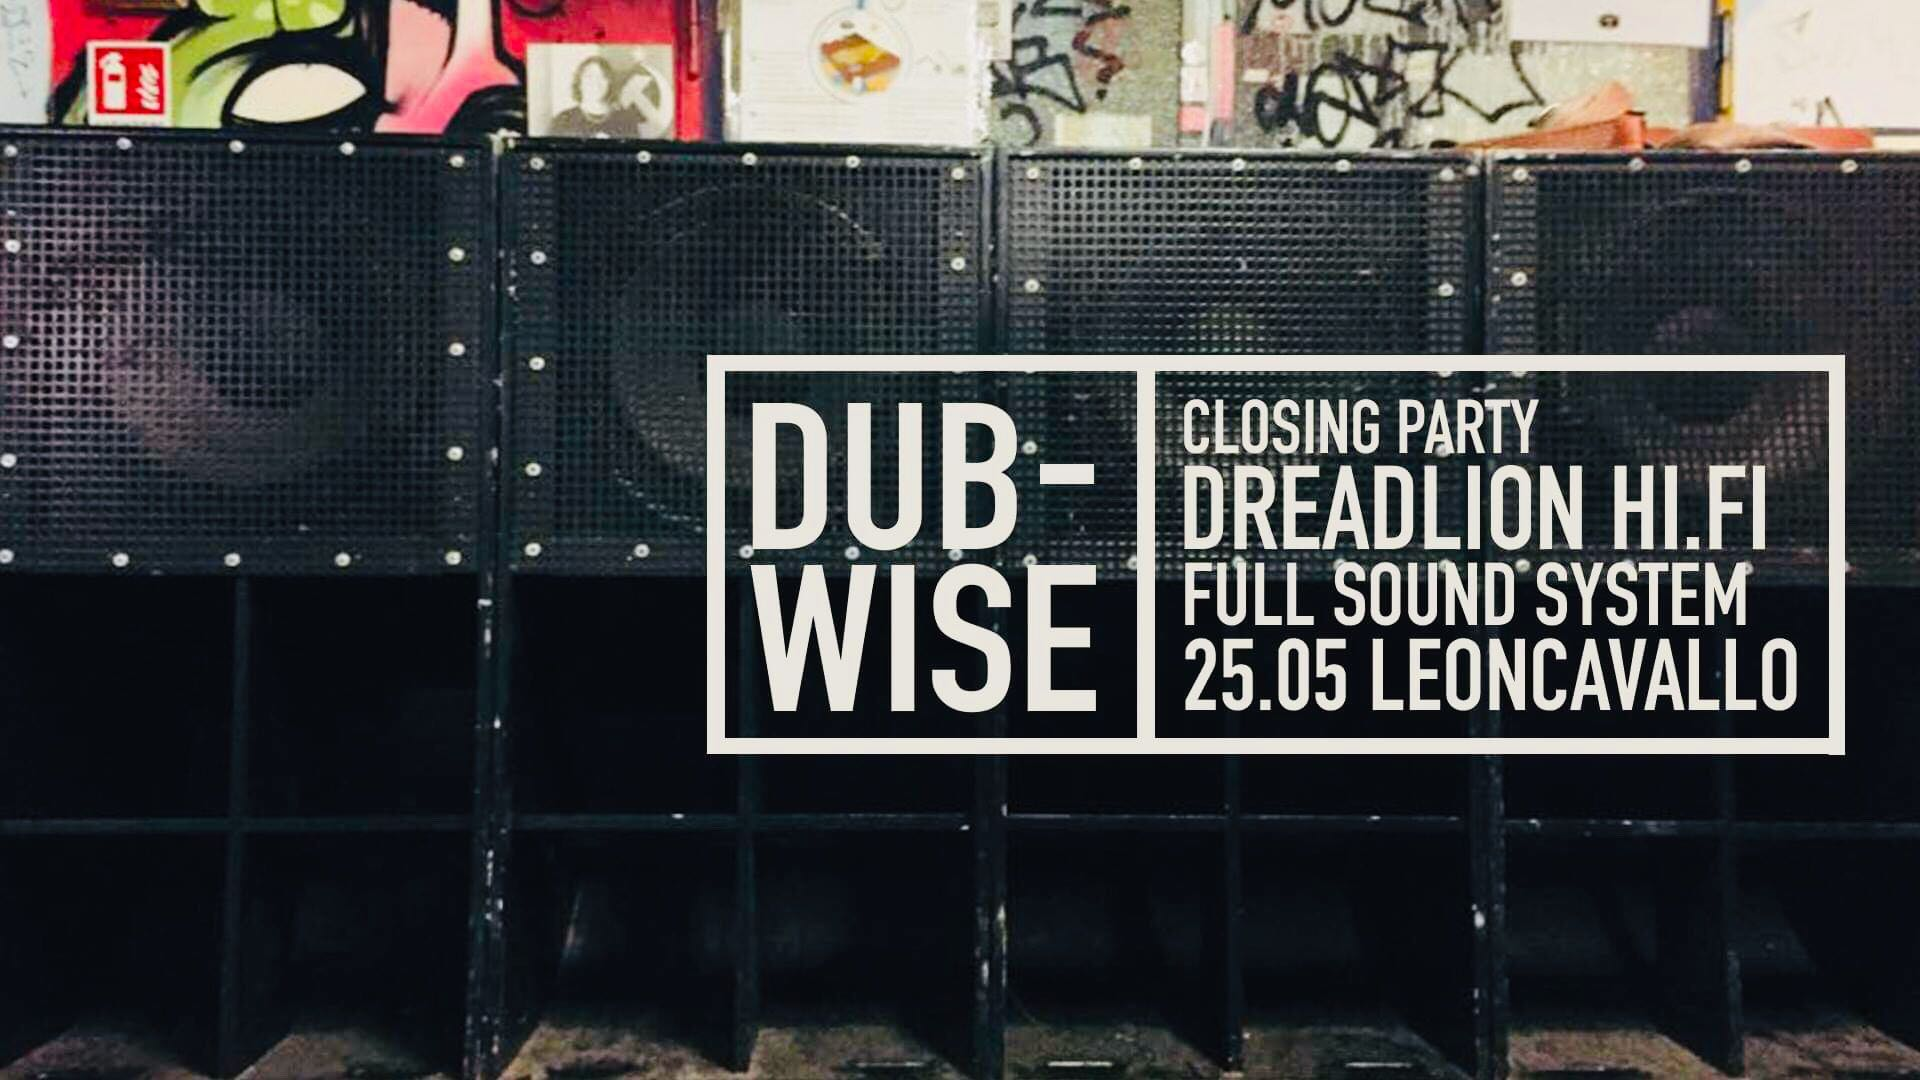 Dubwise closing party